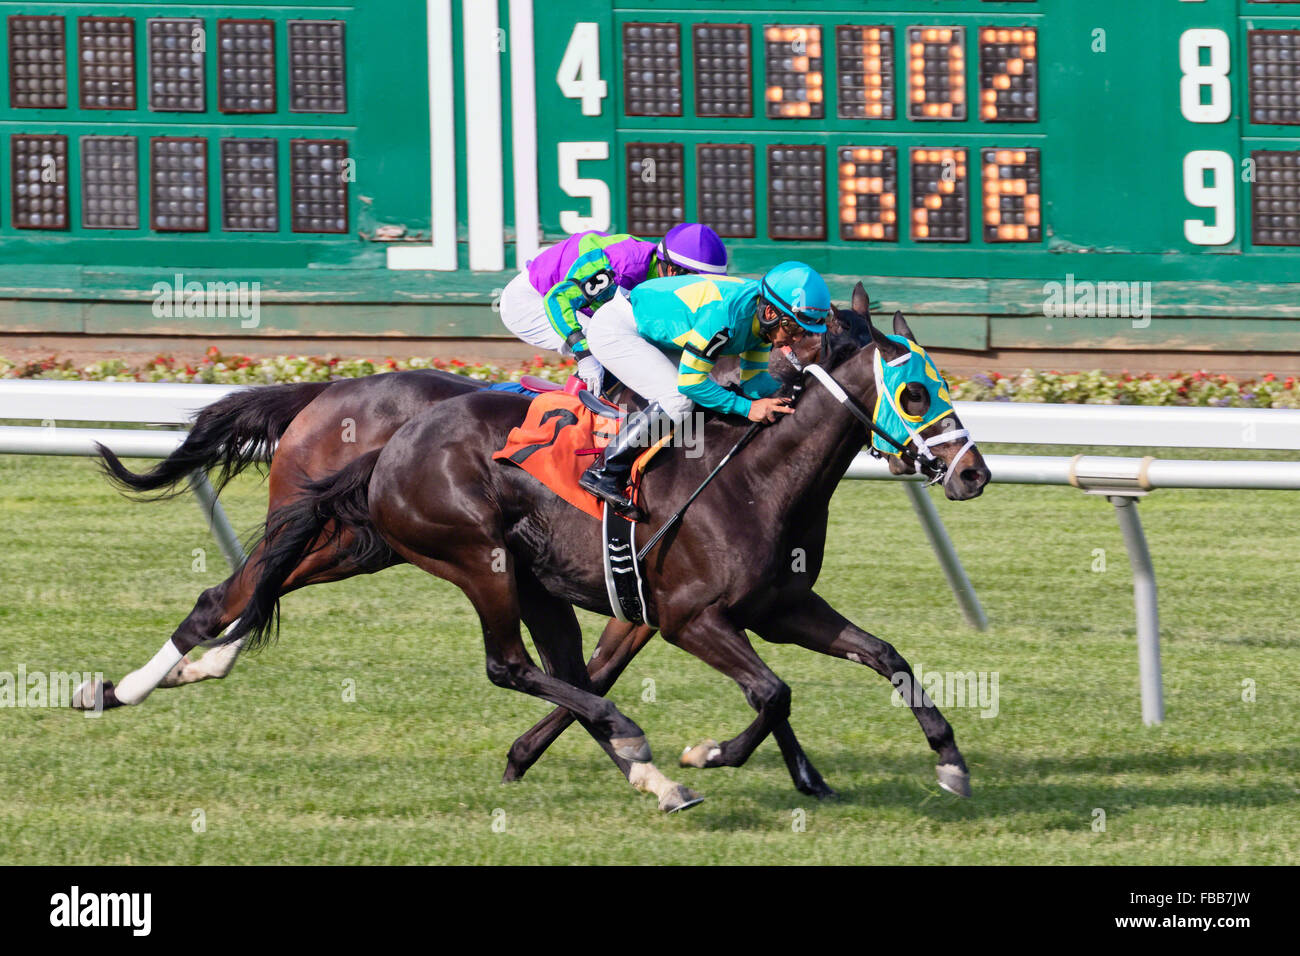 Horseback Racing Head-To-Head at Monmouth Park Race Track, Oceanport, New Jersey - Stock Image